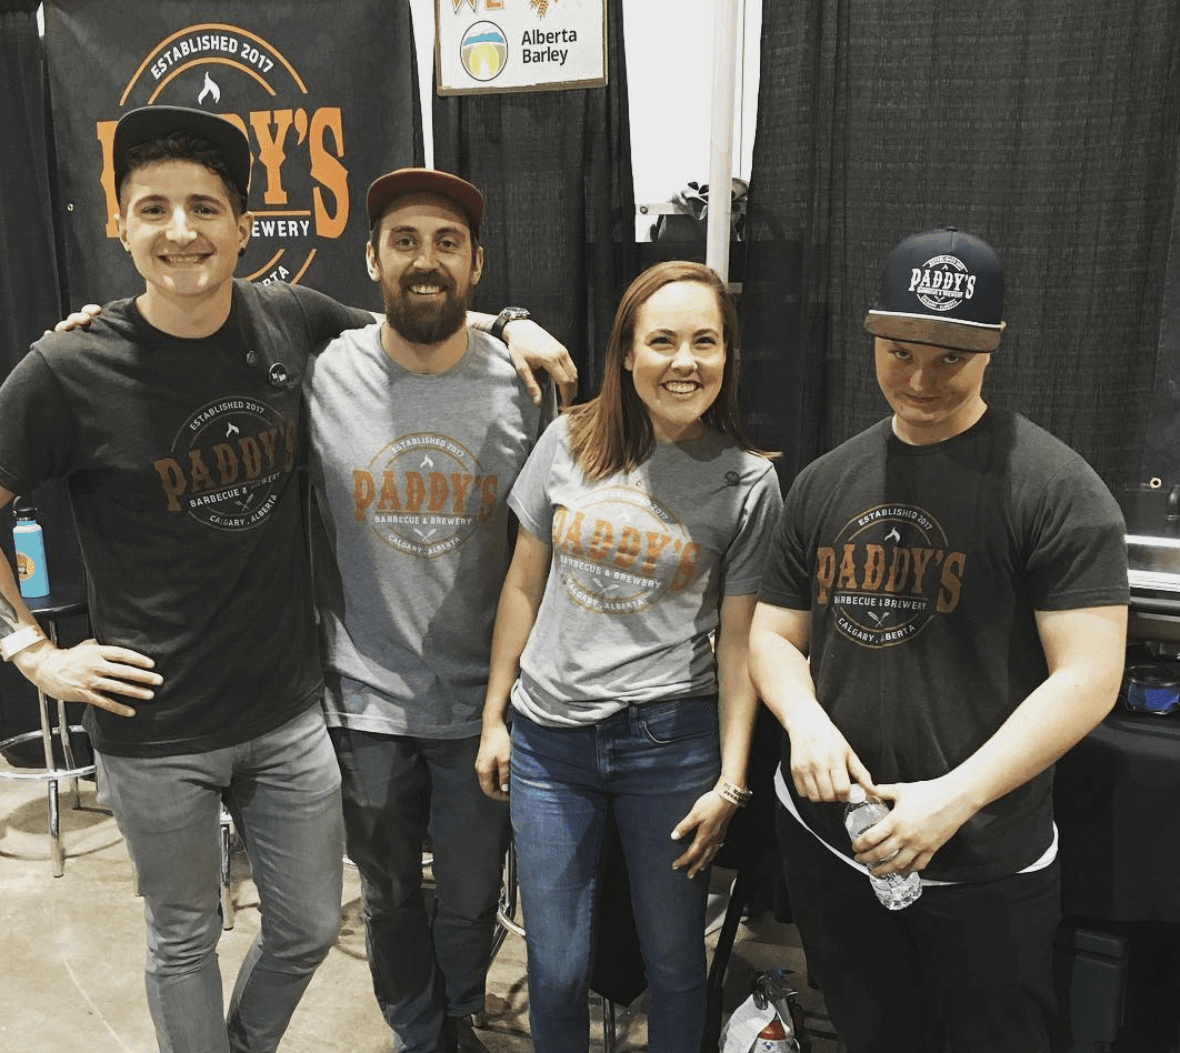 The  Paddy's  team gearing up for the  Calgary International Beer Festival !